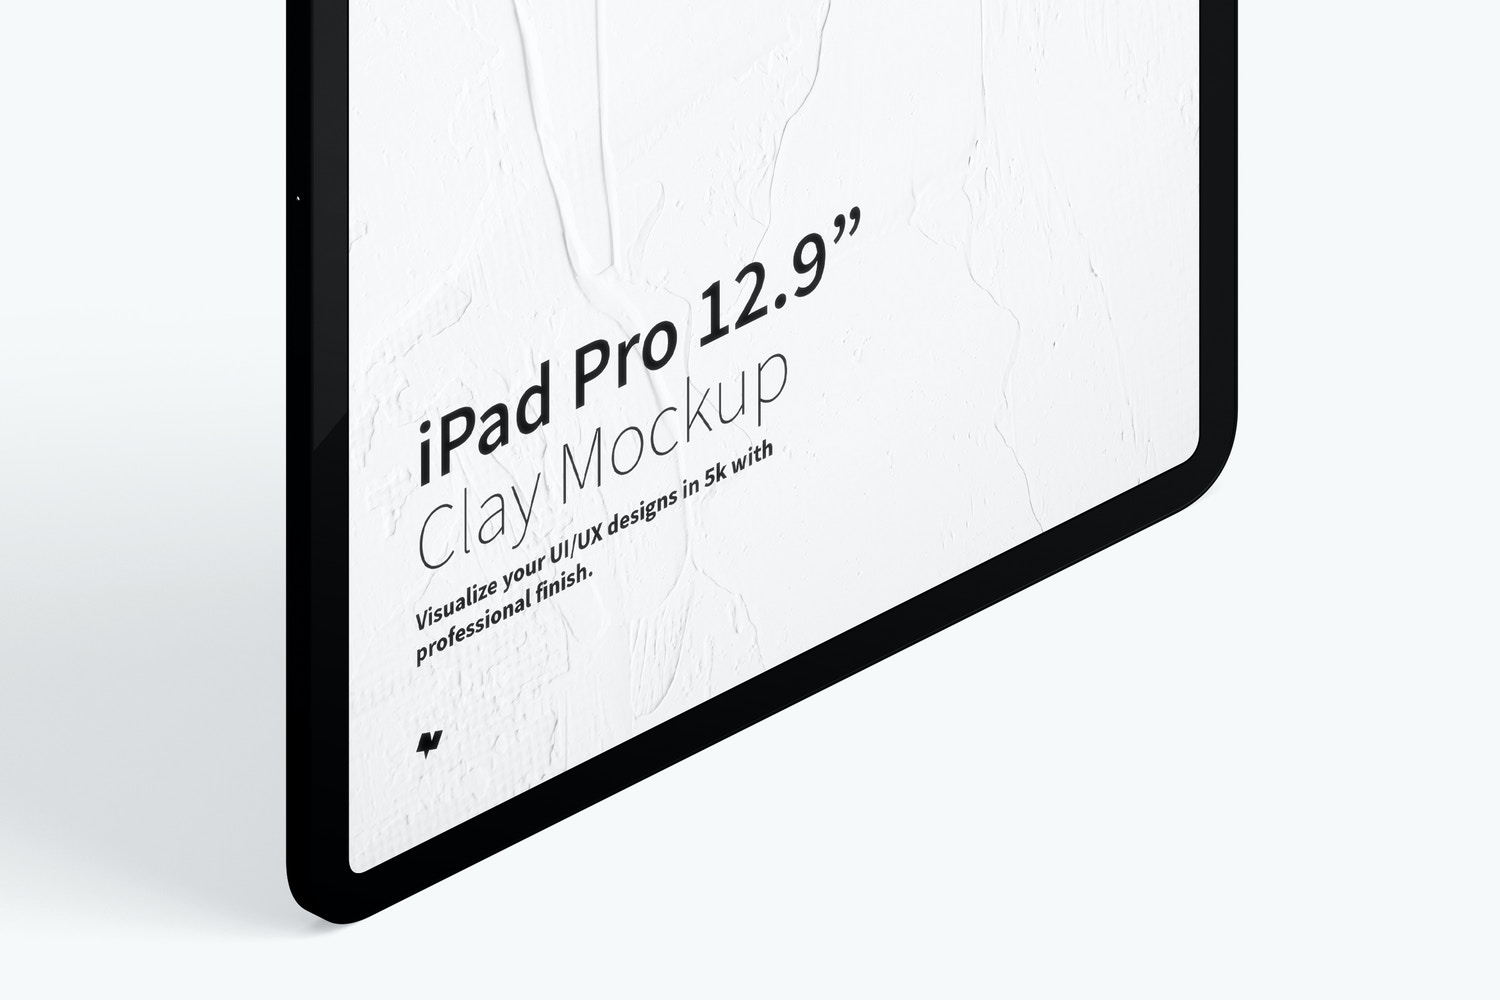 "Clay iPad Pro 12.9"" Mockup, Isometric Right View 02 (3) by Original Mockups on Original Mockups"